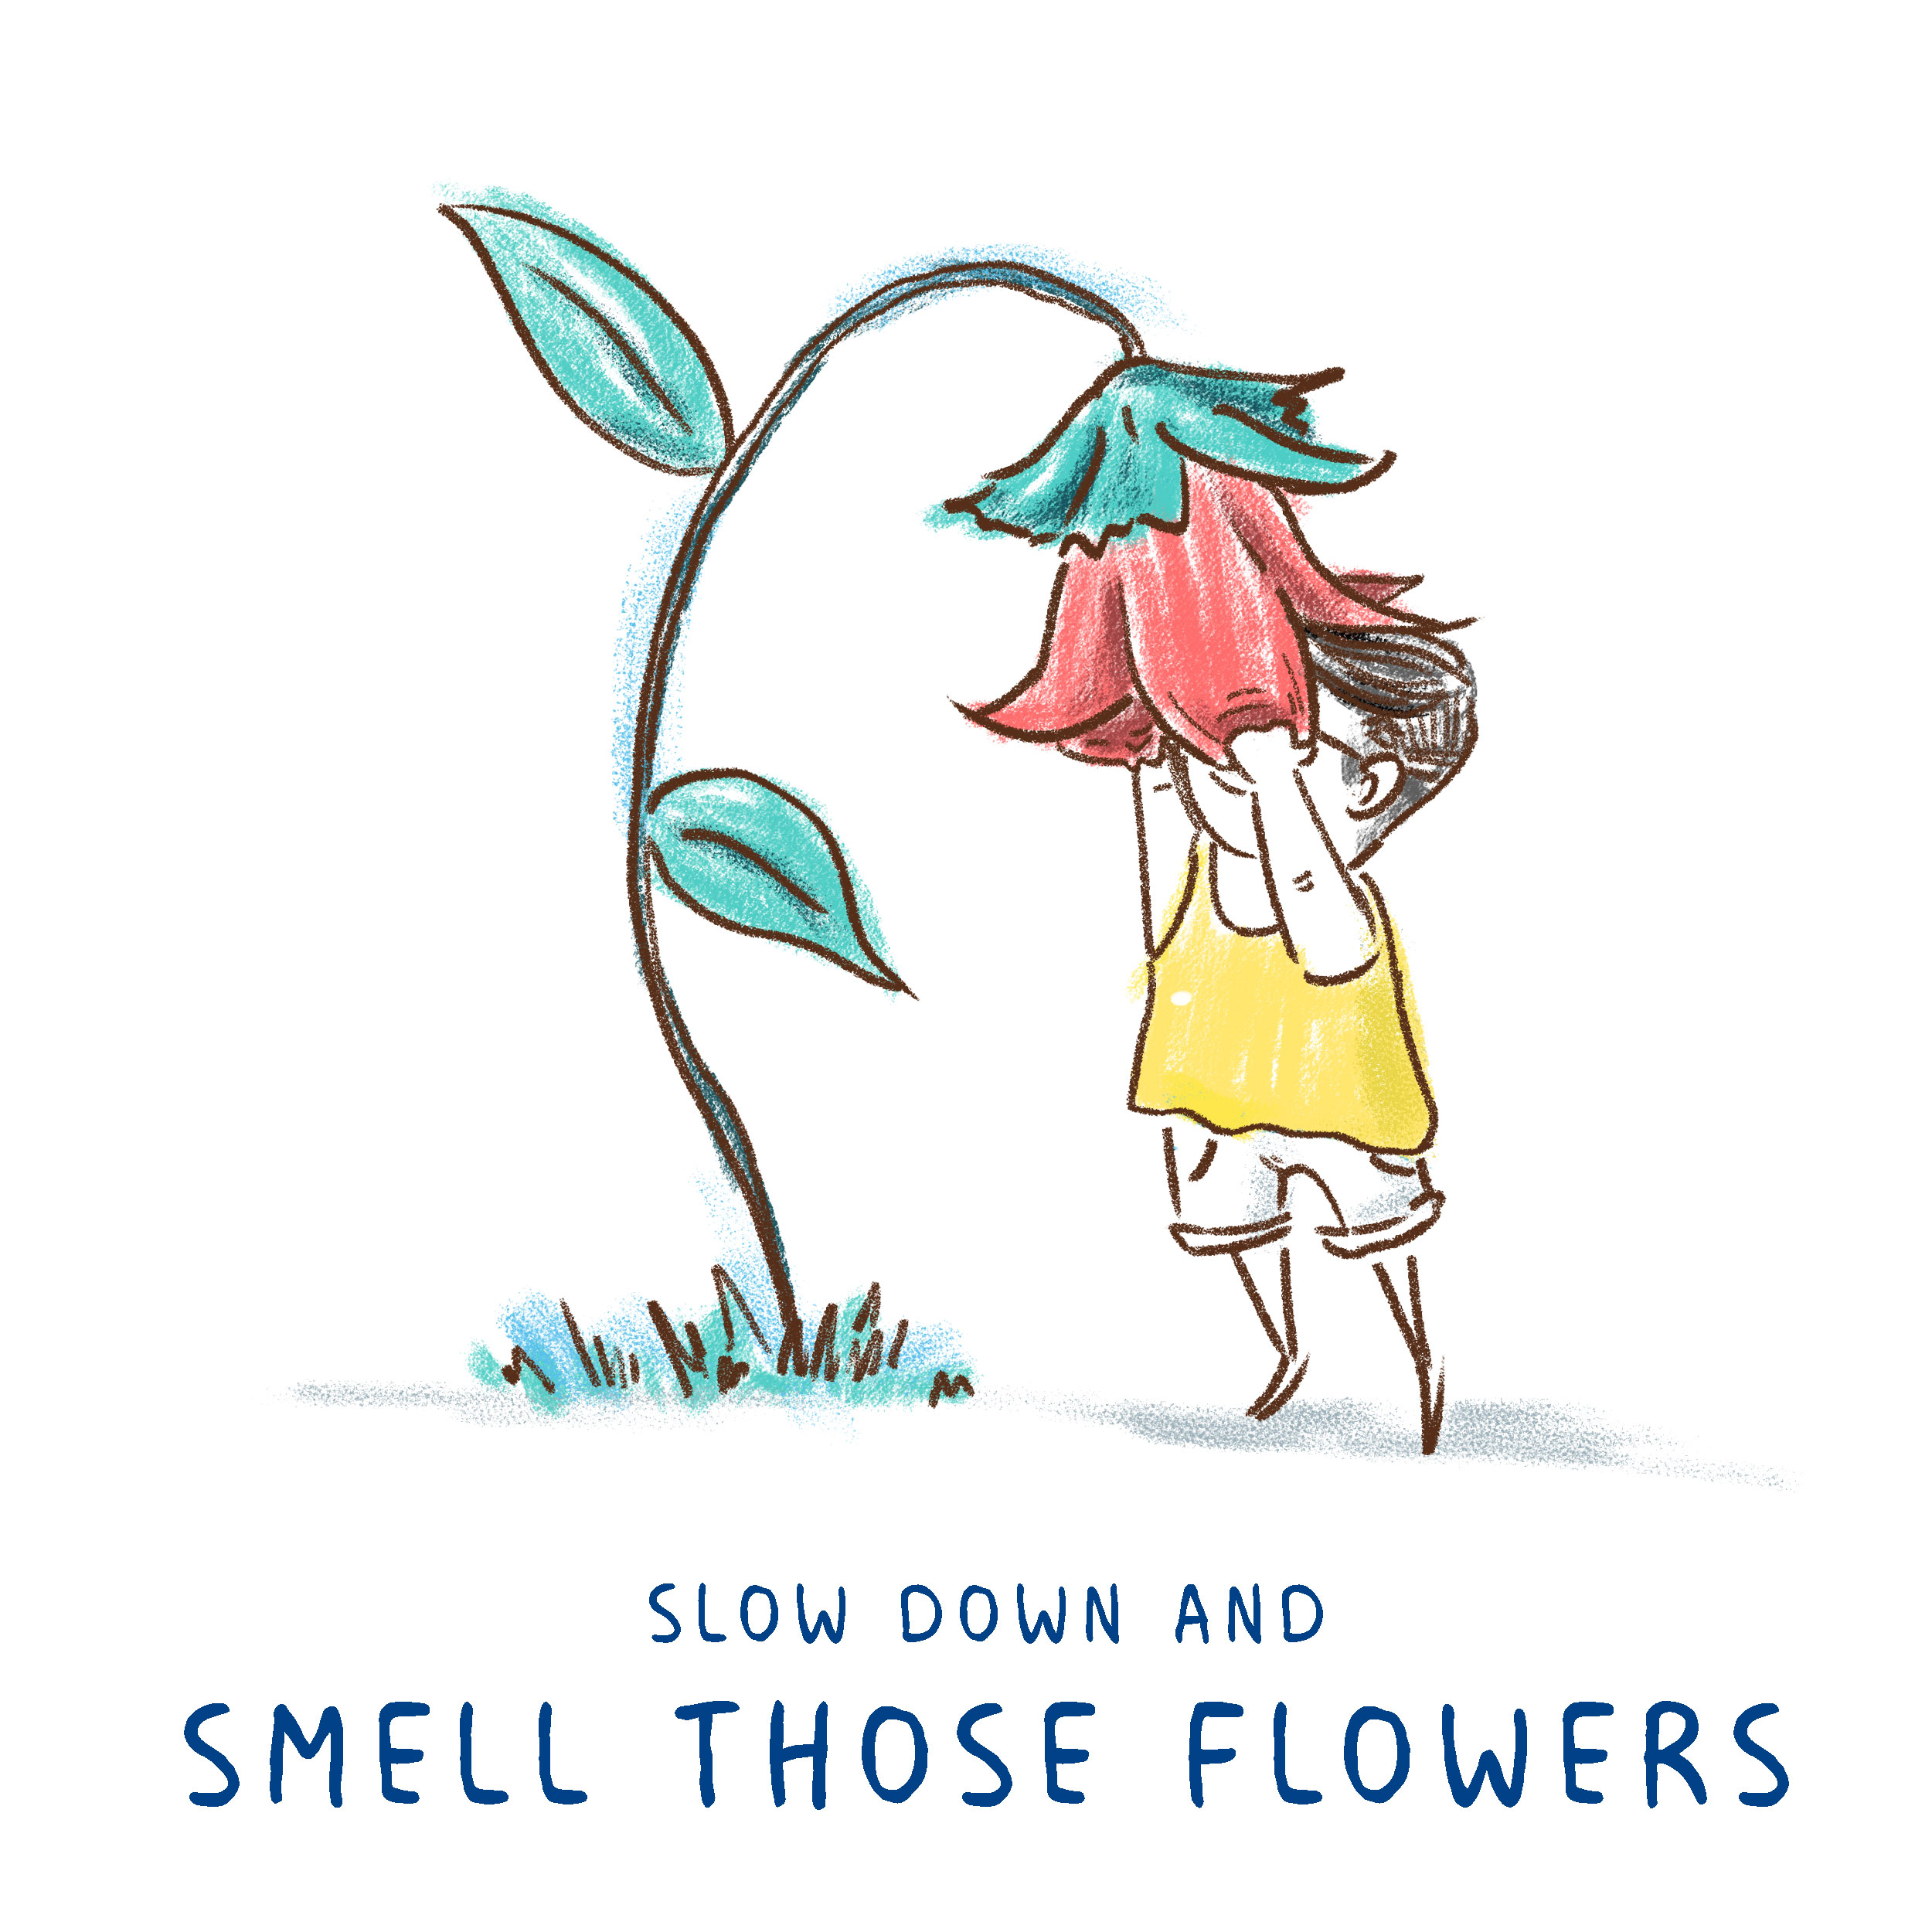 Smellflowers.jpg